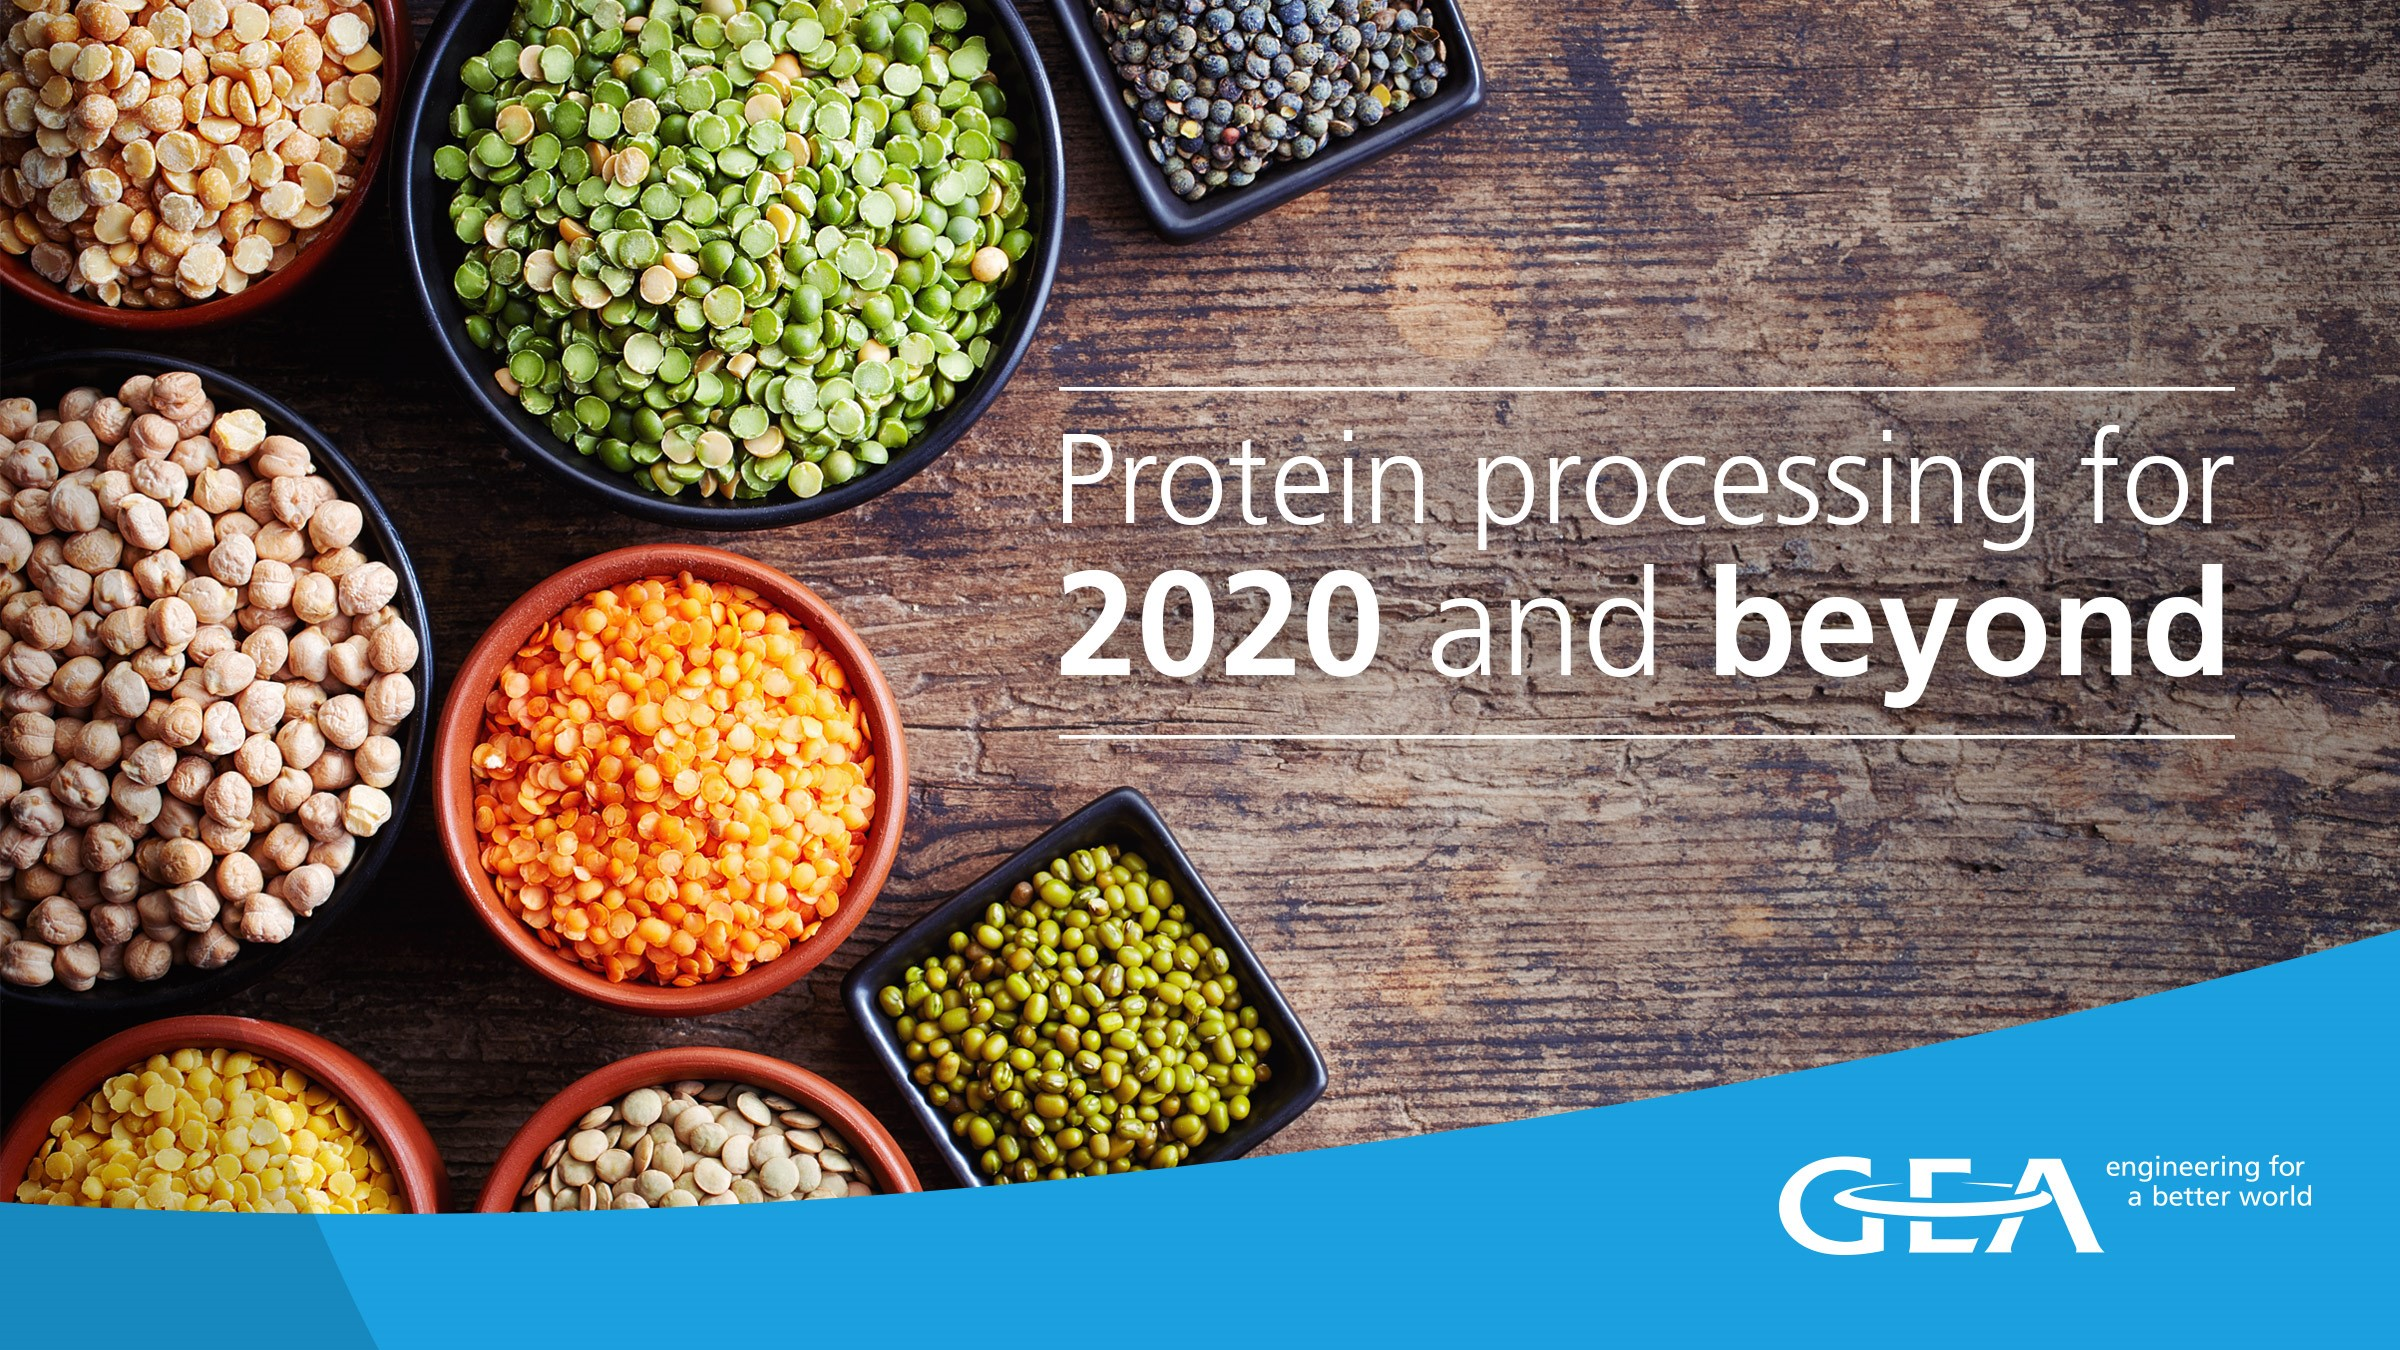 gea protein summit